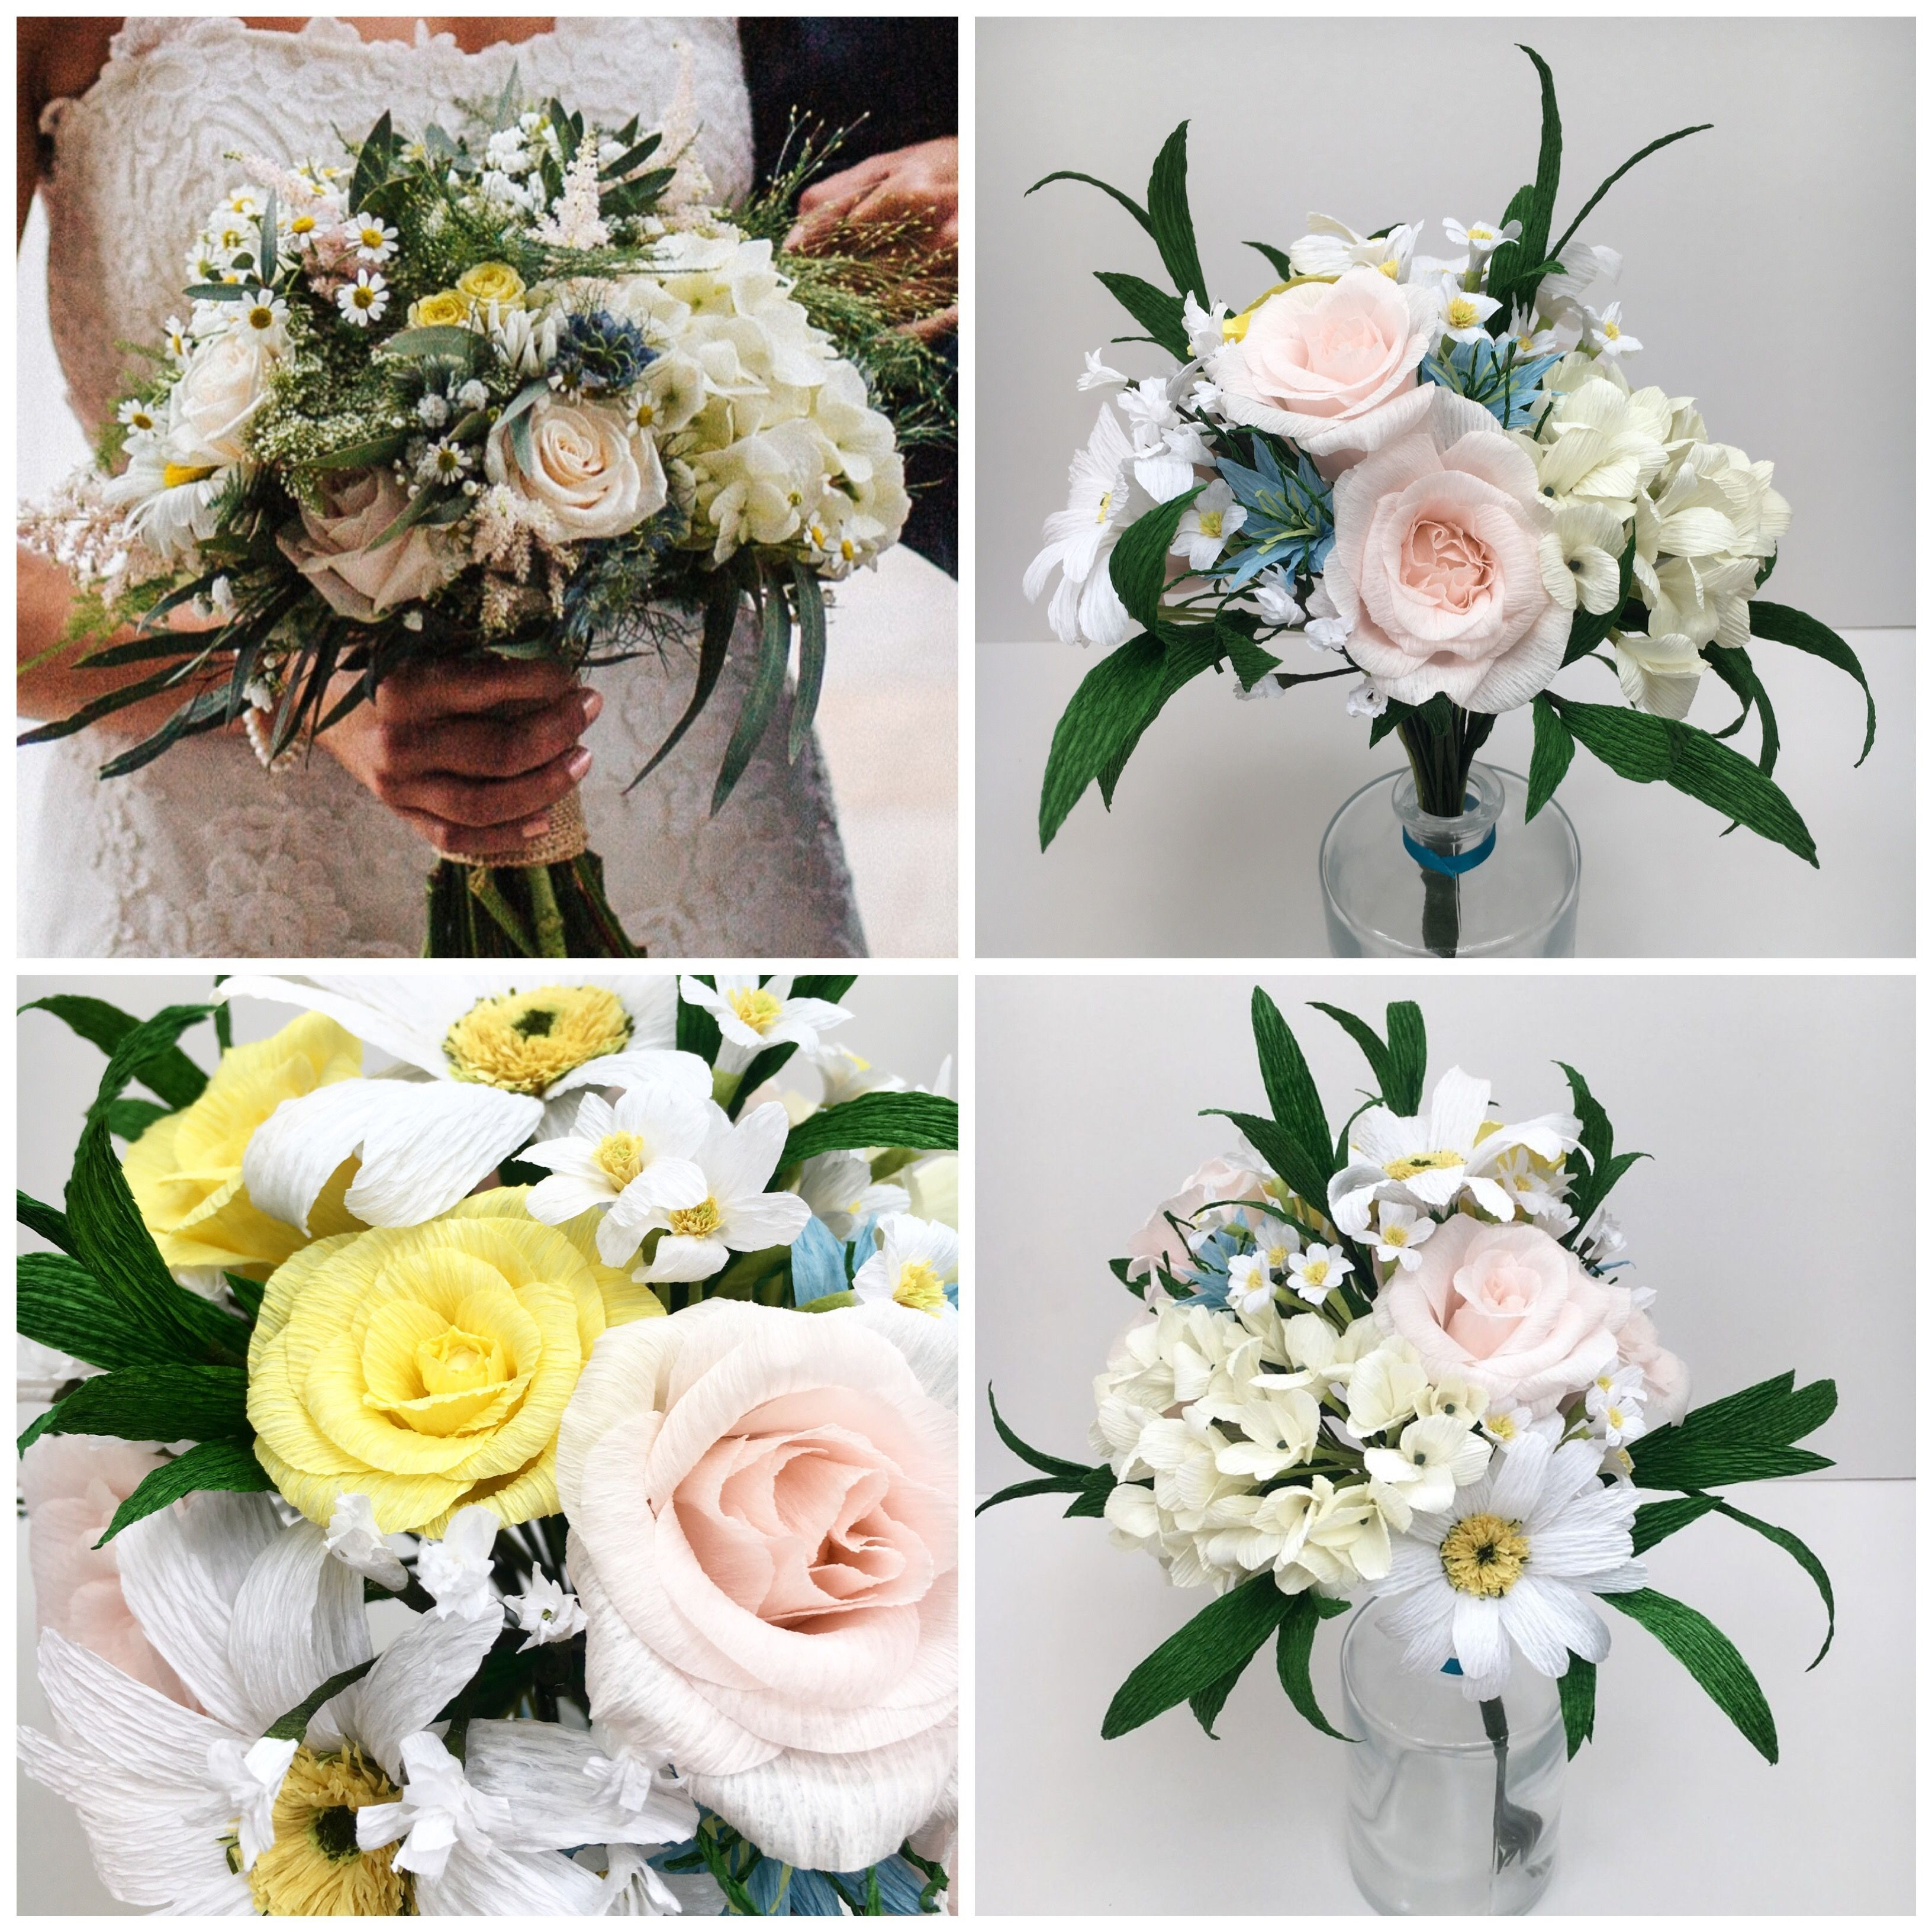 Wedding Bouquet Recreation and Lasting Paper Flowers